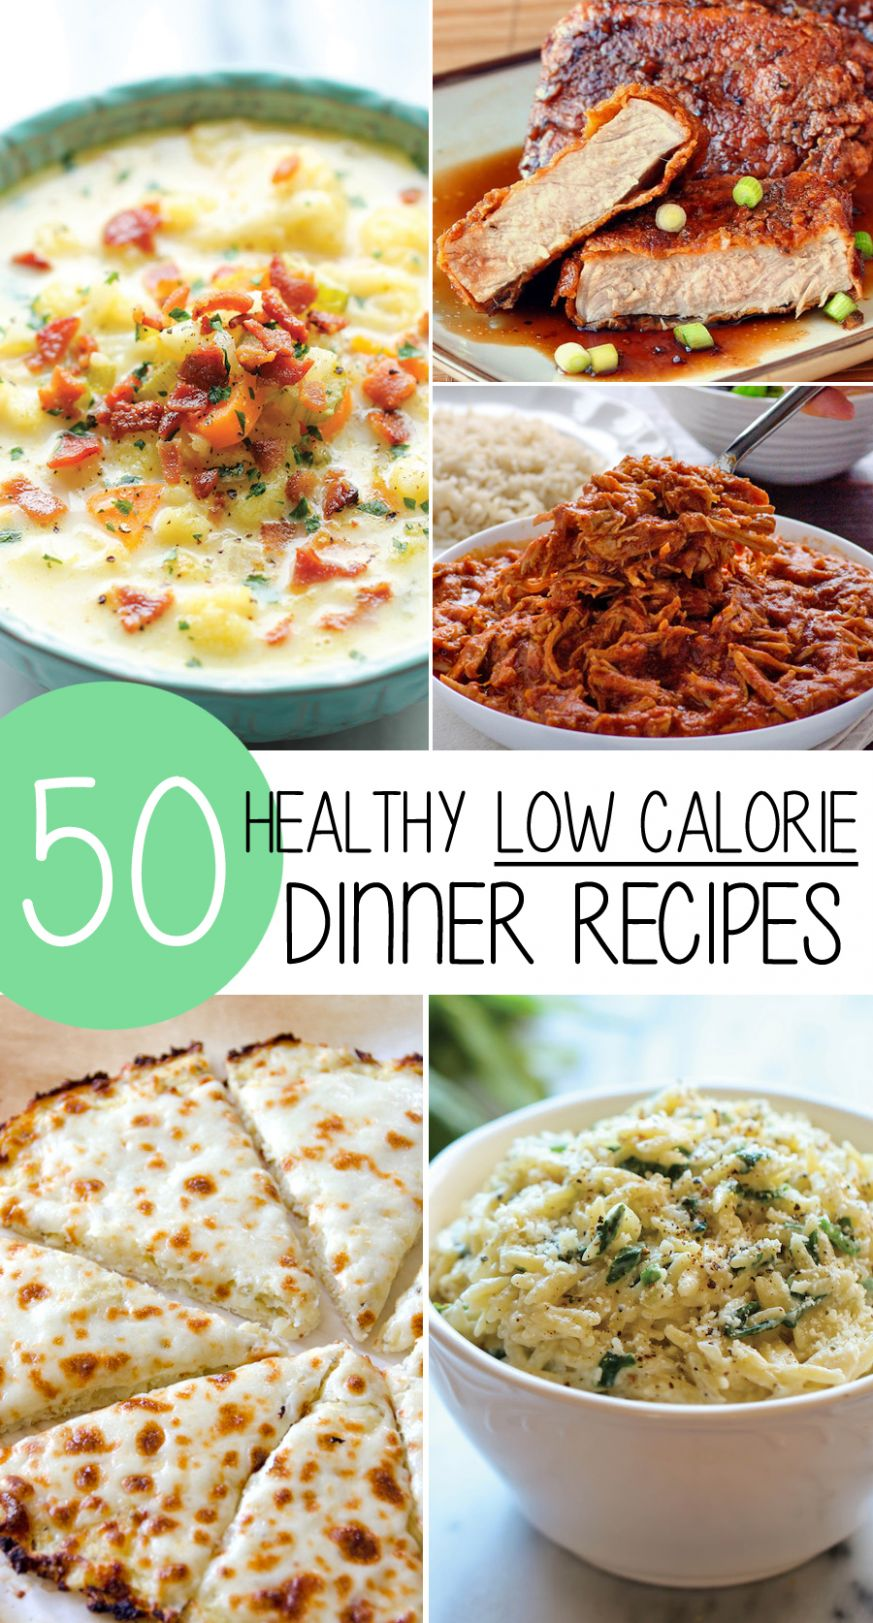 12 Healthy Low Calorie Weight Loss Dinner Recipes! – TrimmedandToned - Food Recipes To Lose Weight